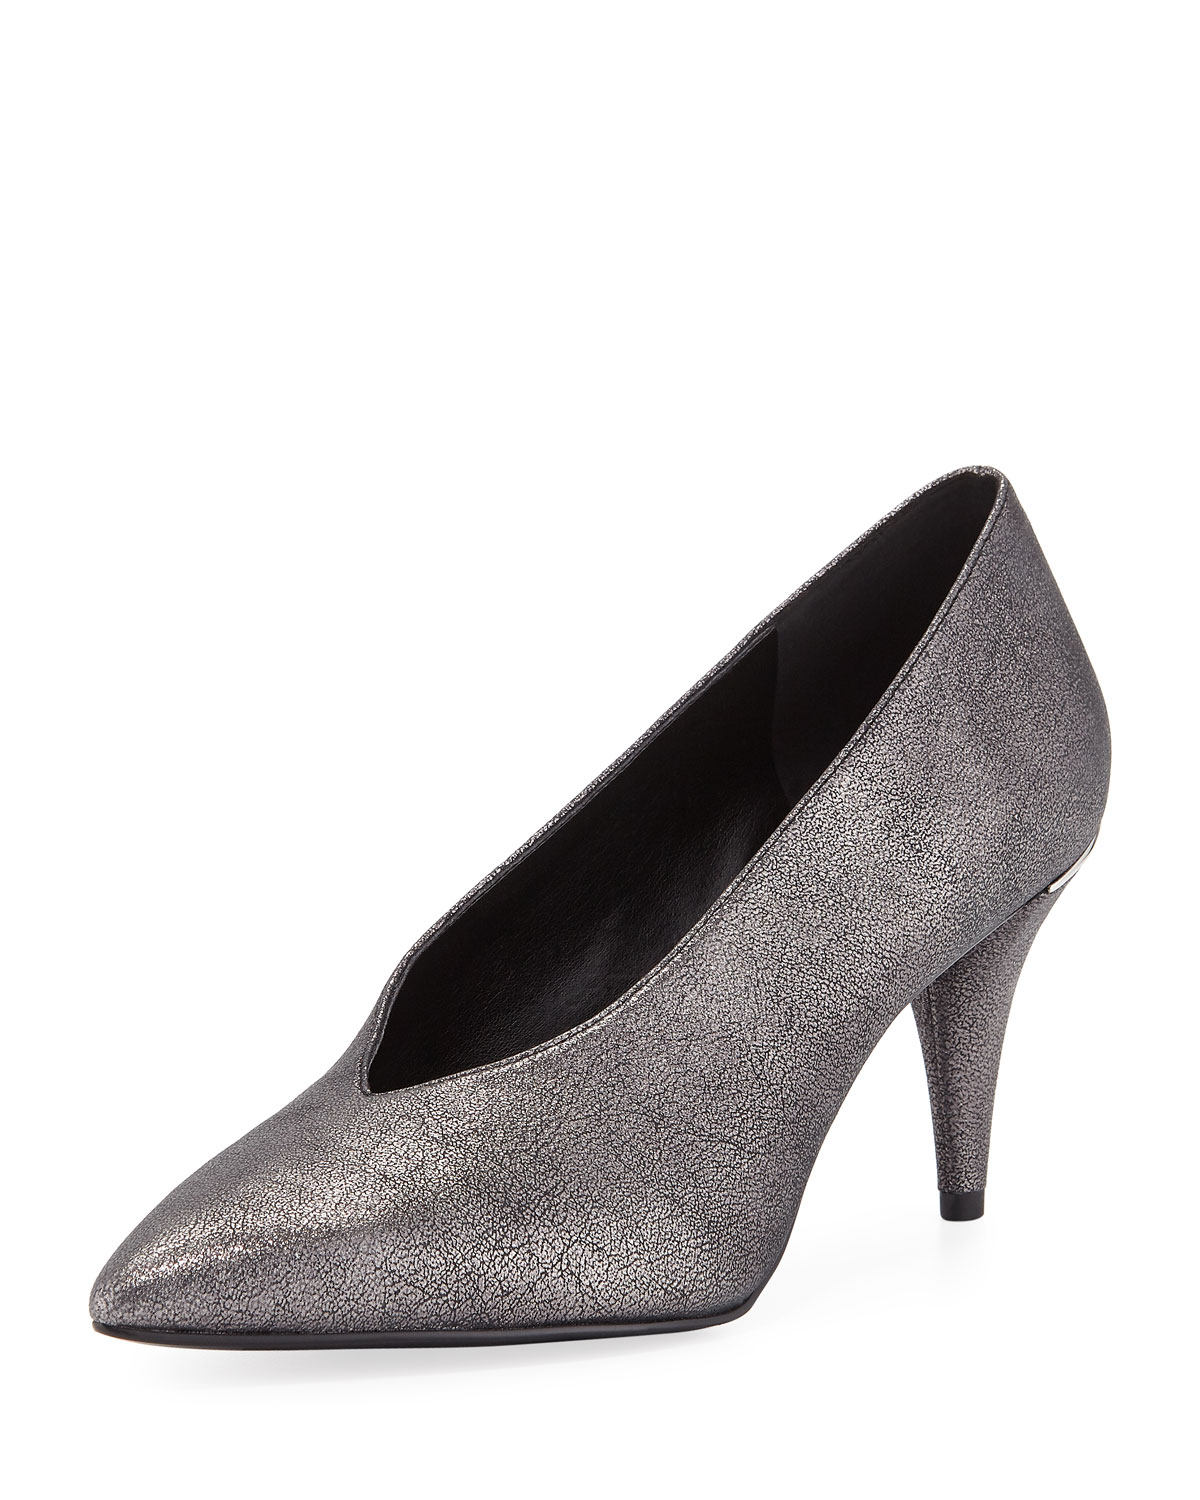 d831756b1852 MICHAEL Michael Kors Lizzy Mid-Heel Choked-Up Sueded Metallic Pumps ...